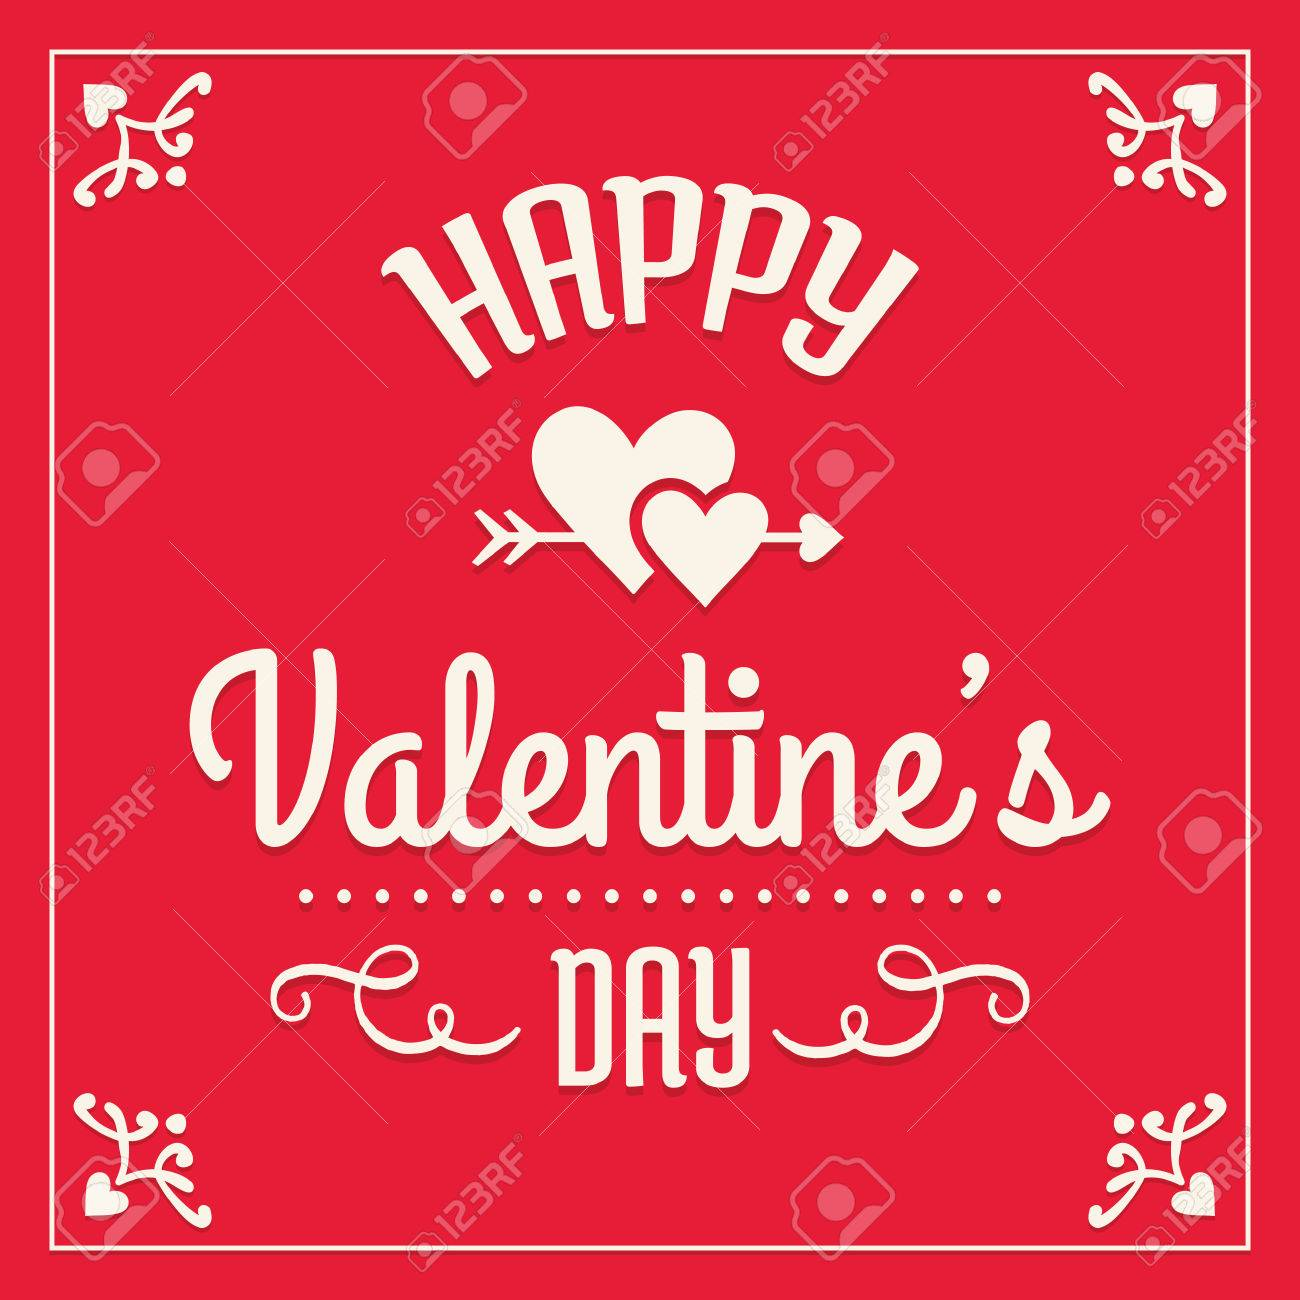 Romantic Happy Valentines Day Card Template Typographic Design – Valentines Day Cards Template